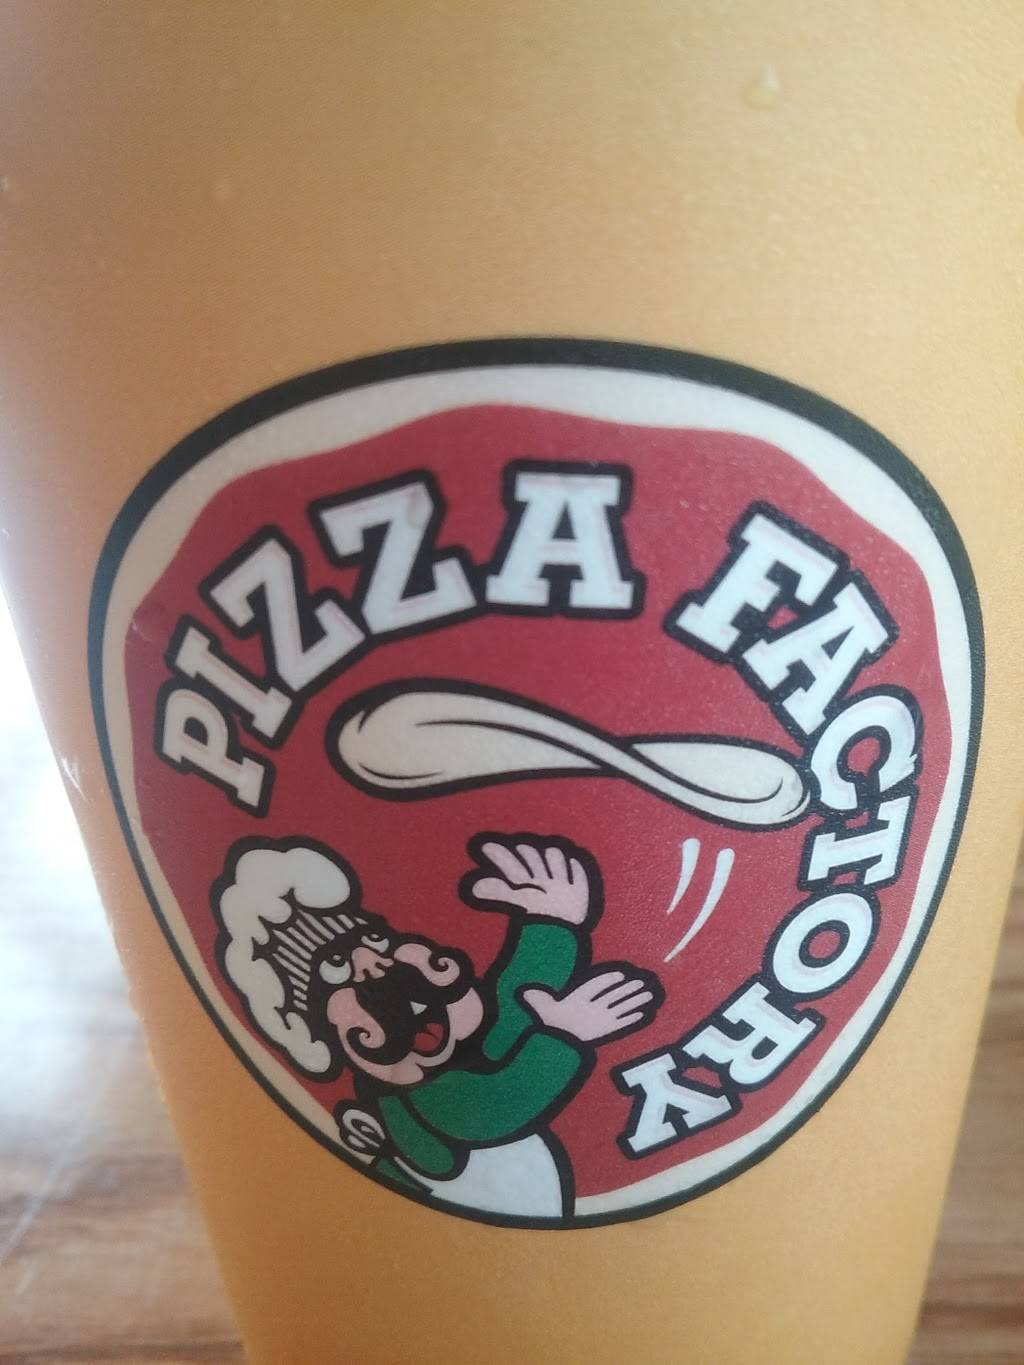 Pizza Factory | meal delivery | 509 West Ave, Arlington, WA 98223, USA | 3604358701 OR +1 360-435-8701